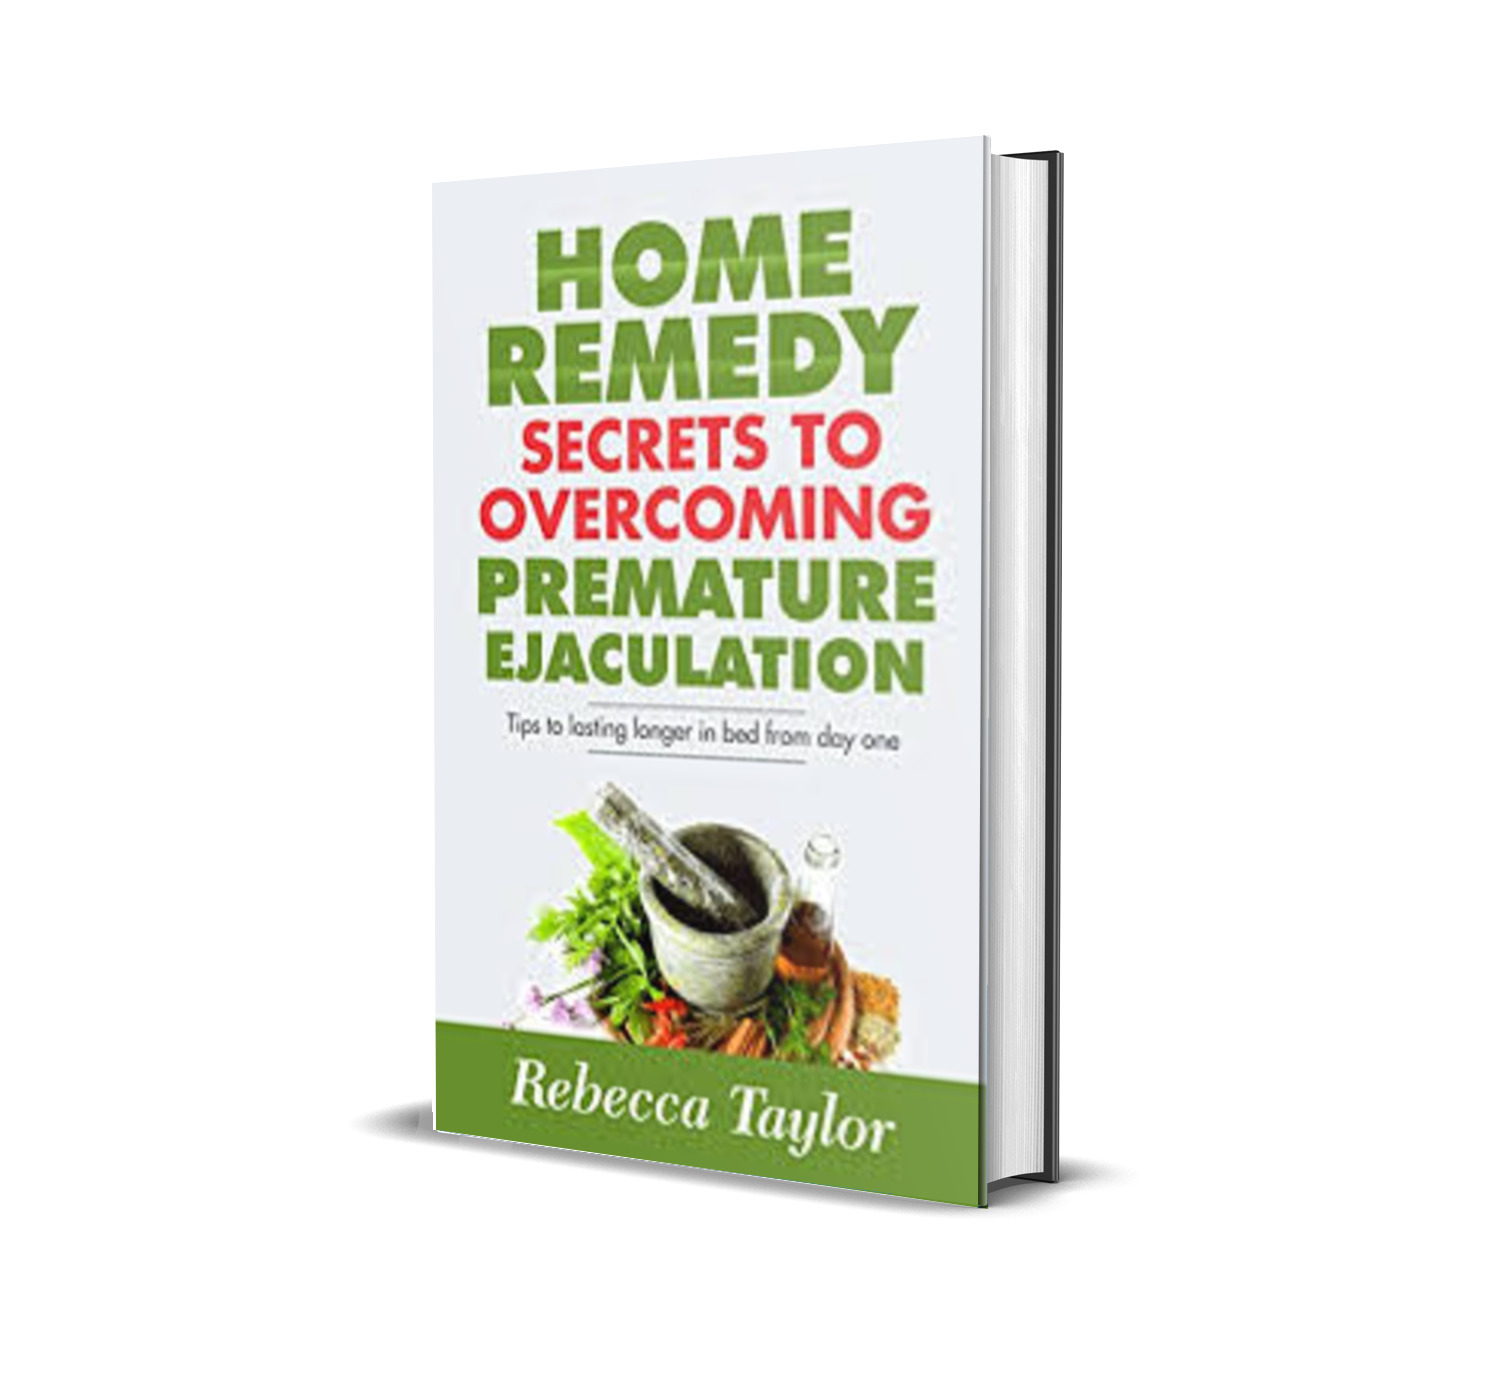 Home Remedy Secrets To Overcoming Premature Ejaculation: Tips To Lasting Longer In Bed From Day One- Rebecca Taylor